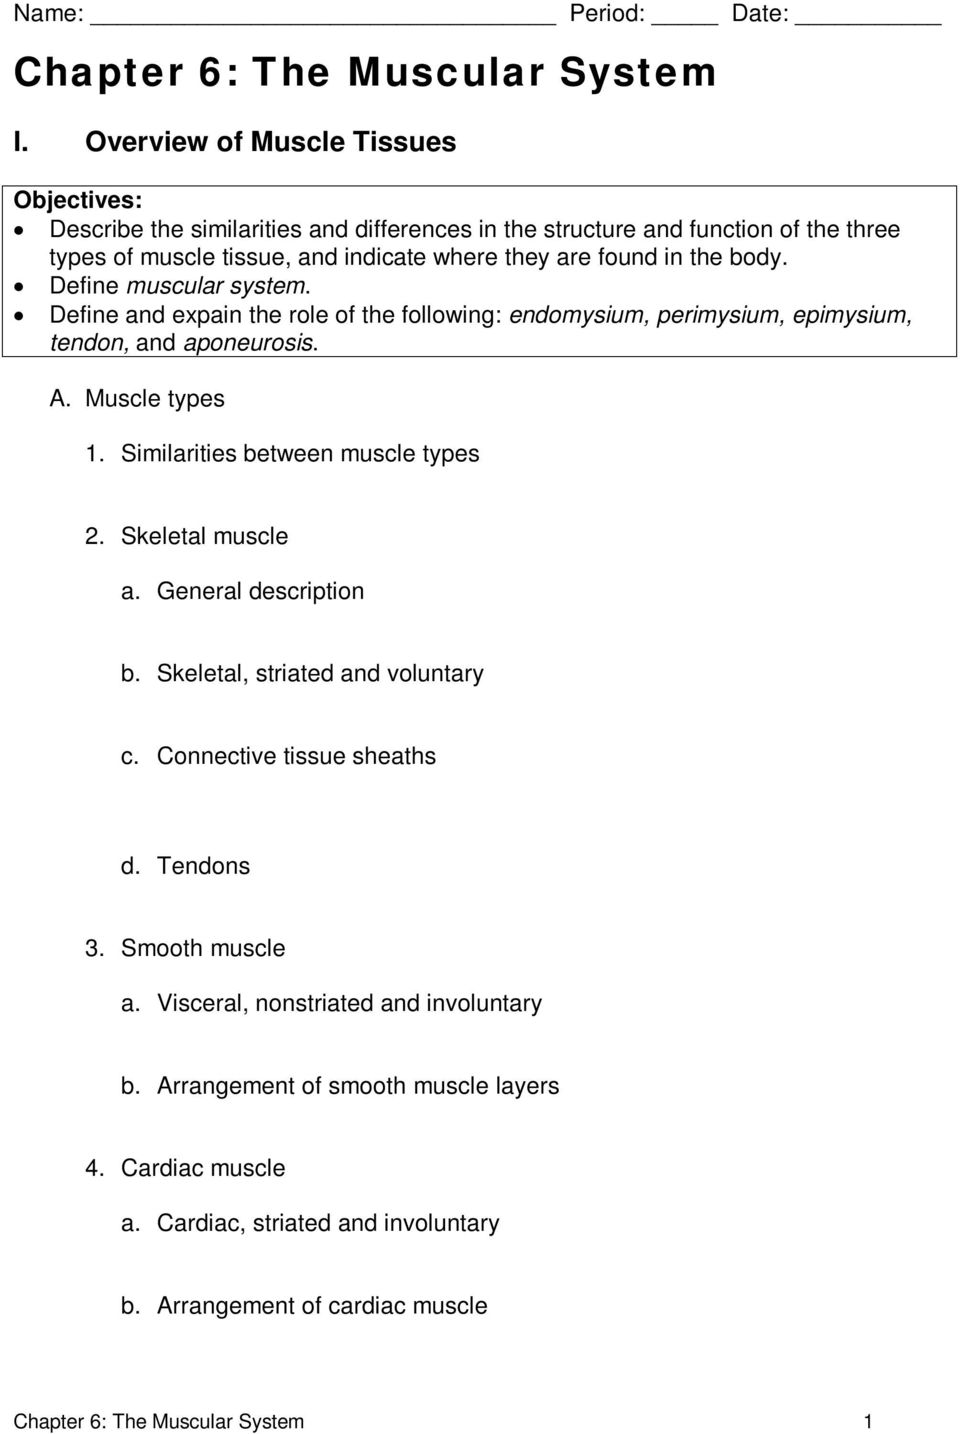 Workbooks » Chapter 6 Anatomy And Physiology Coloring Workbook ...